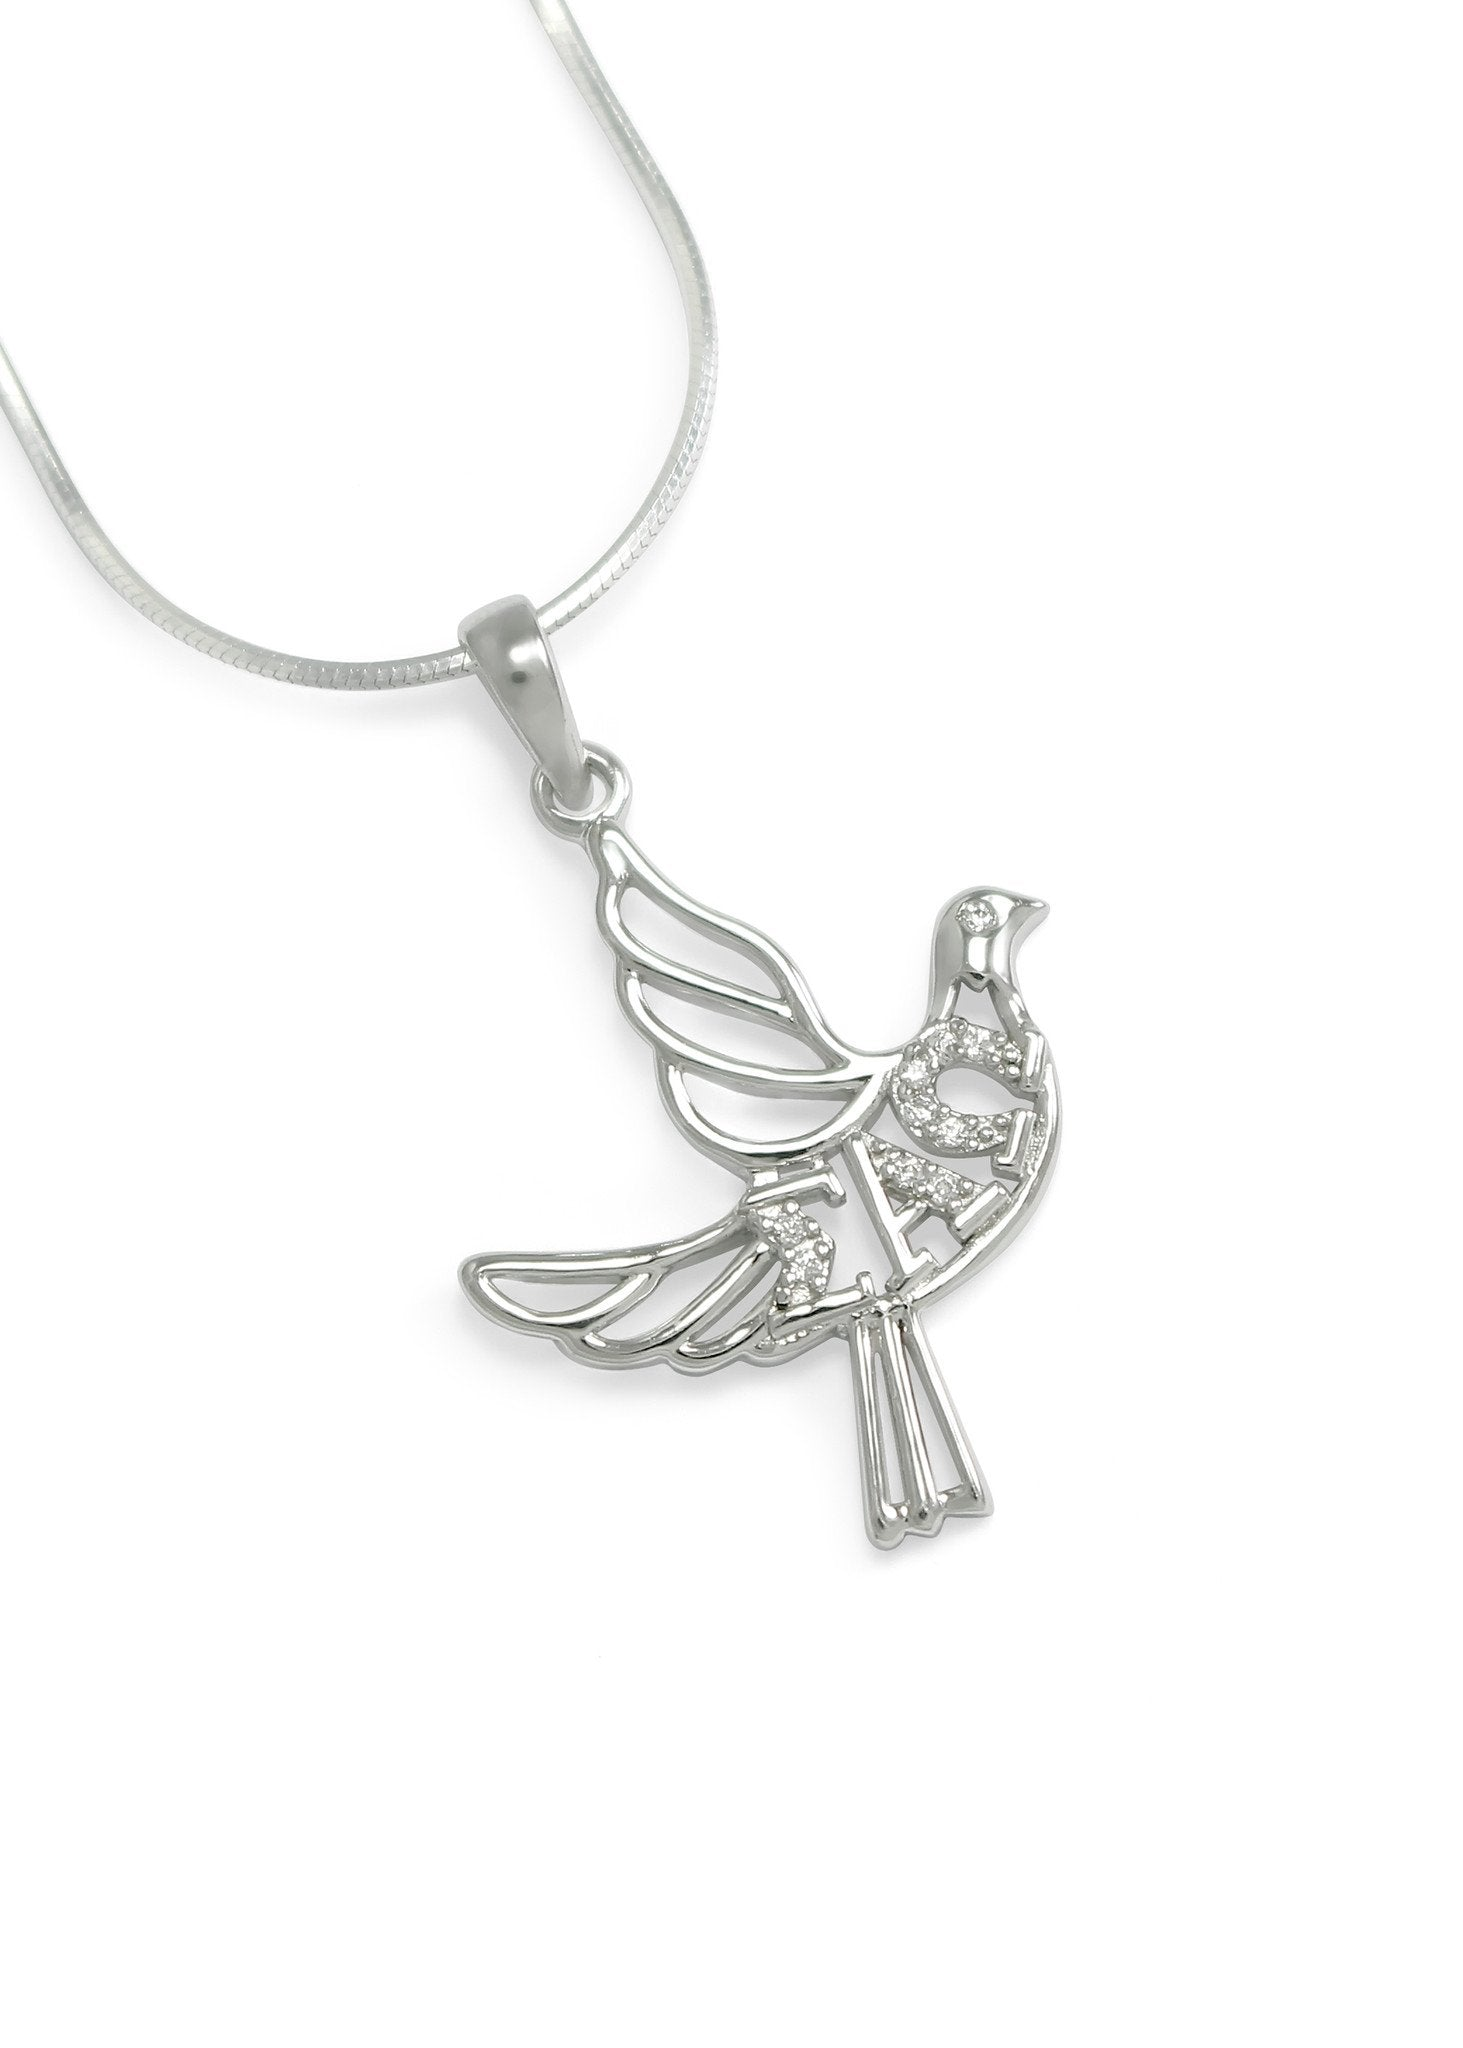 silver sterling more pendant visit necklace for dove the pin link image religious